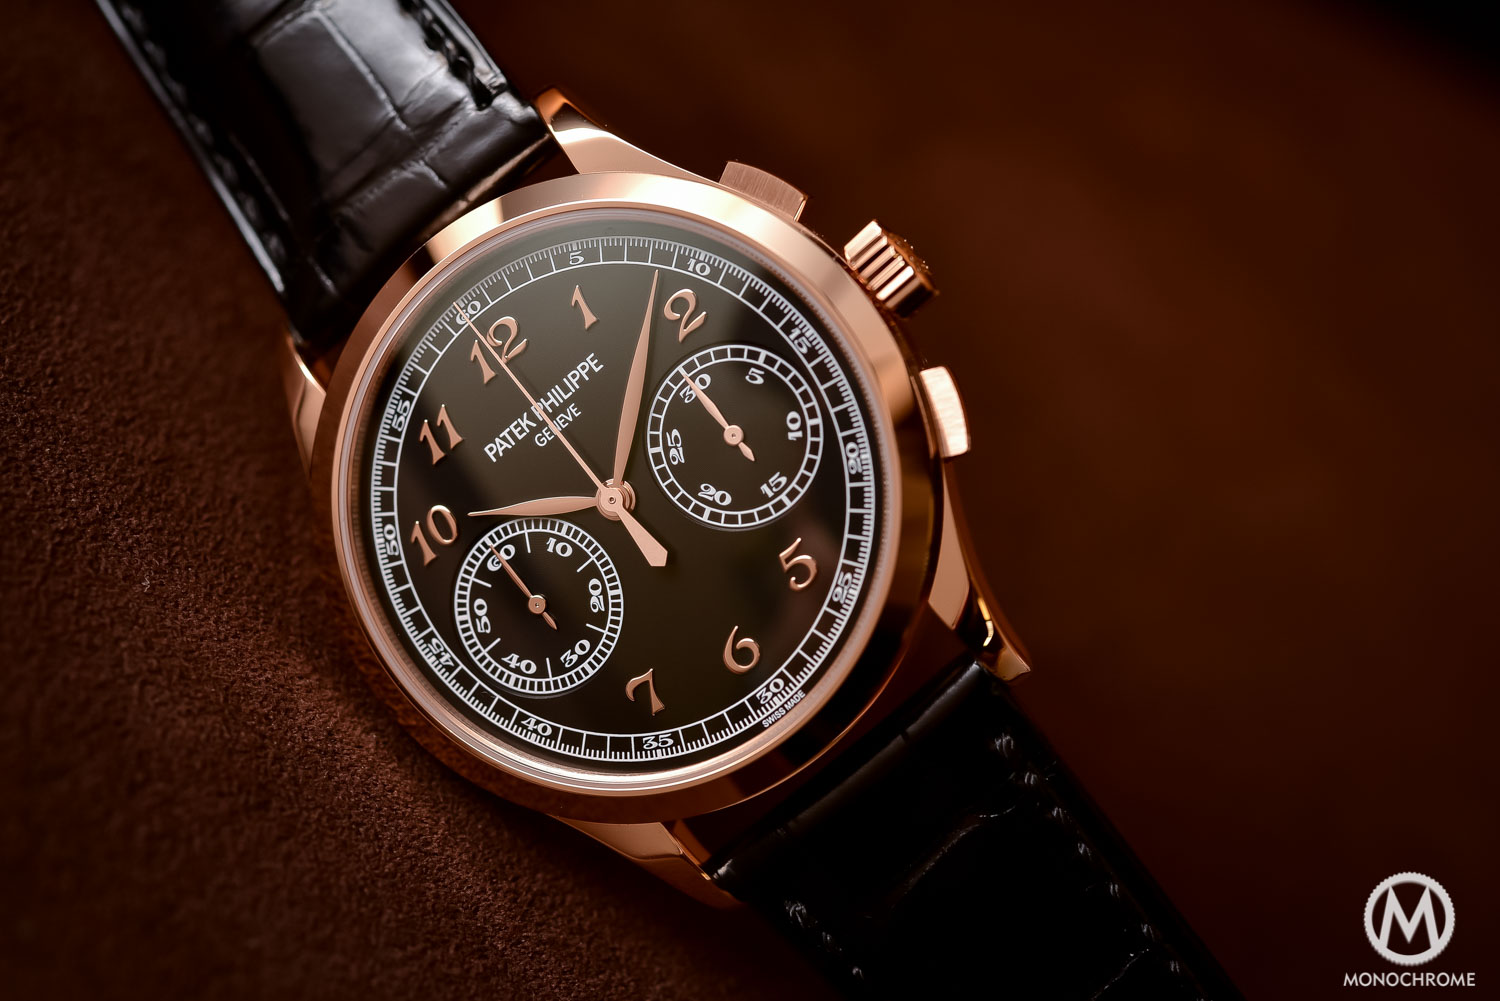 P Philippe Watch Hands On Review Of The 2016 Patek Philippe 5170r Chronograph Now